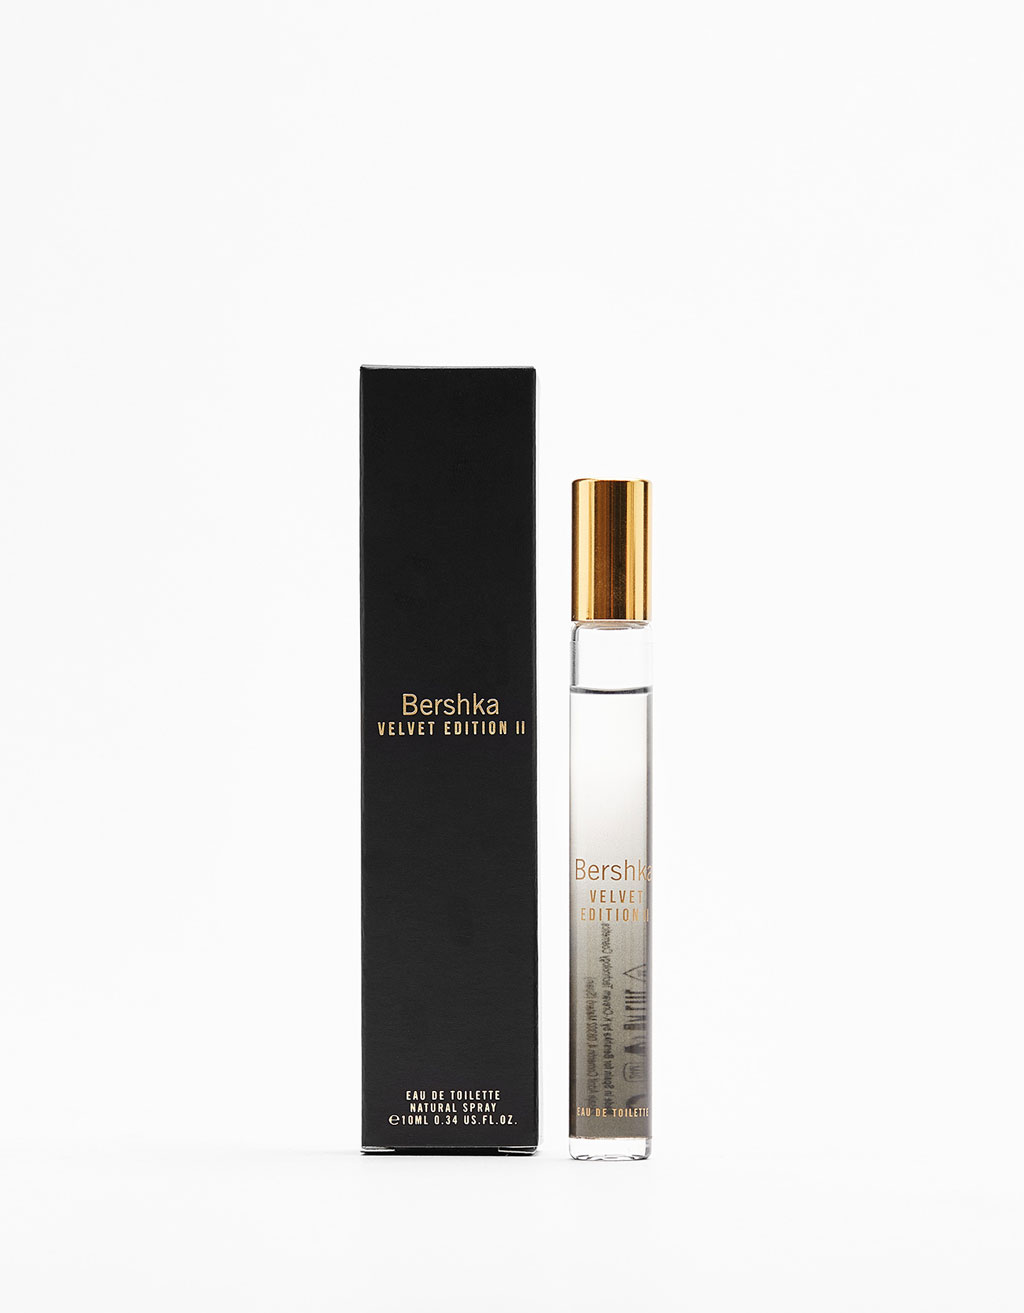 Bershka Velvet Edition II Roll-on 10 ml Eau de Toilette